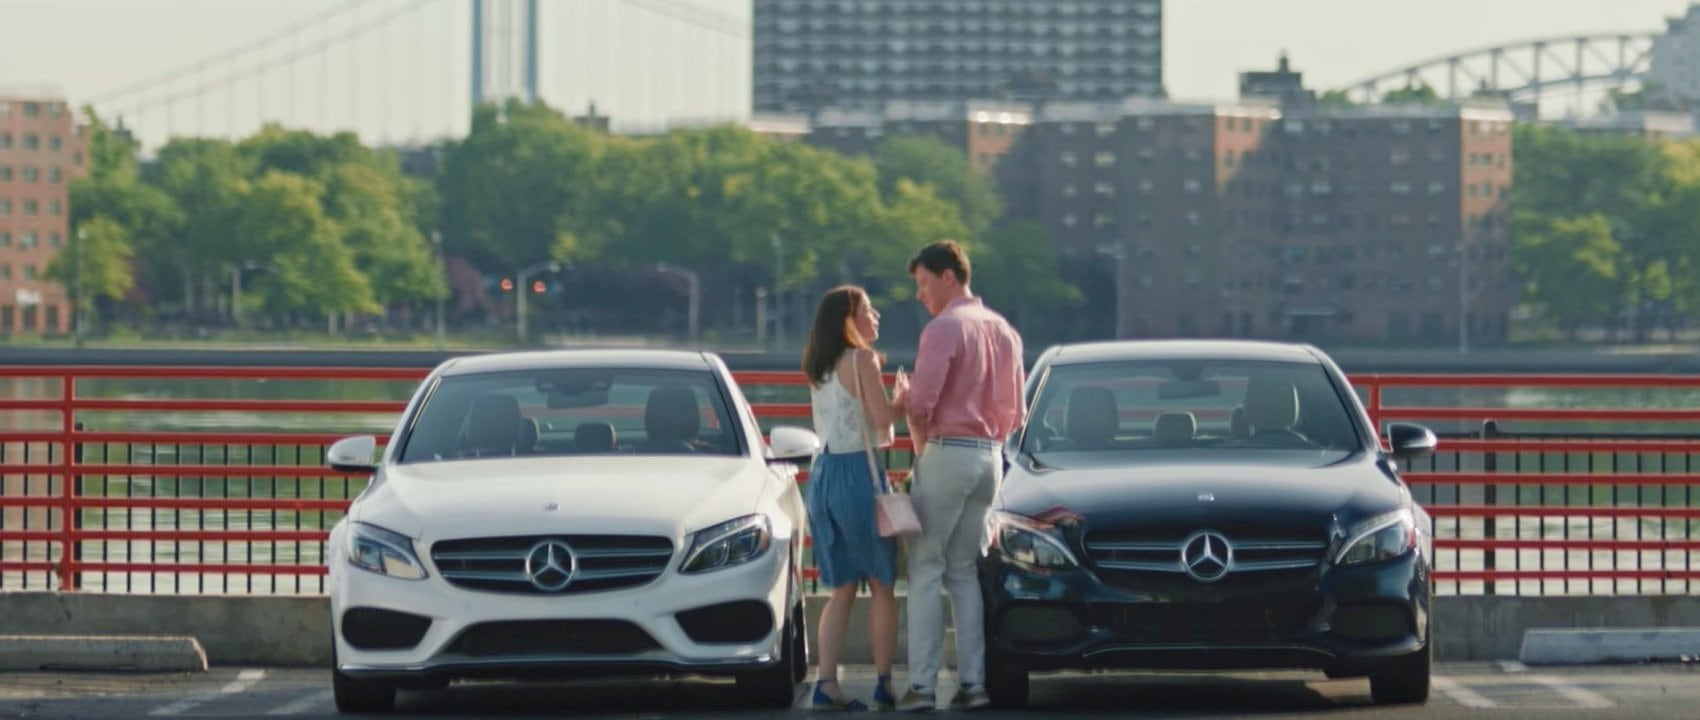 A couple meets in front of their Mercedes-Benz vehicles in a parking lot.